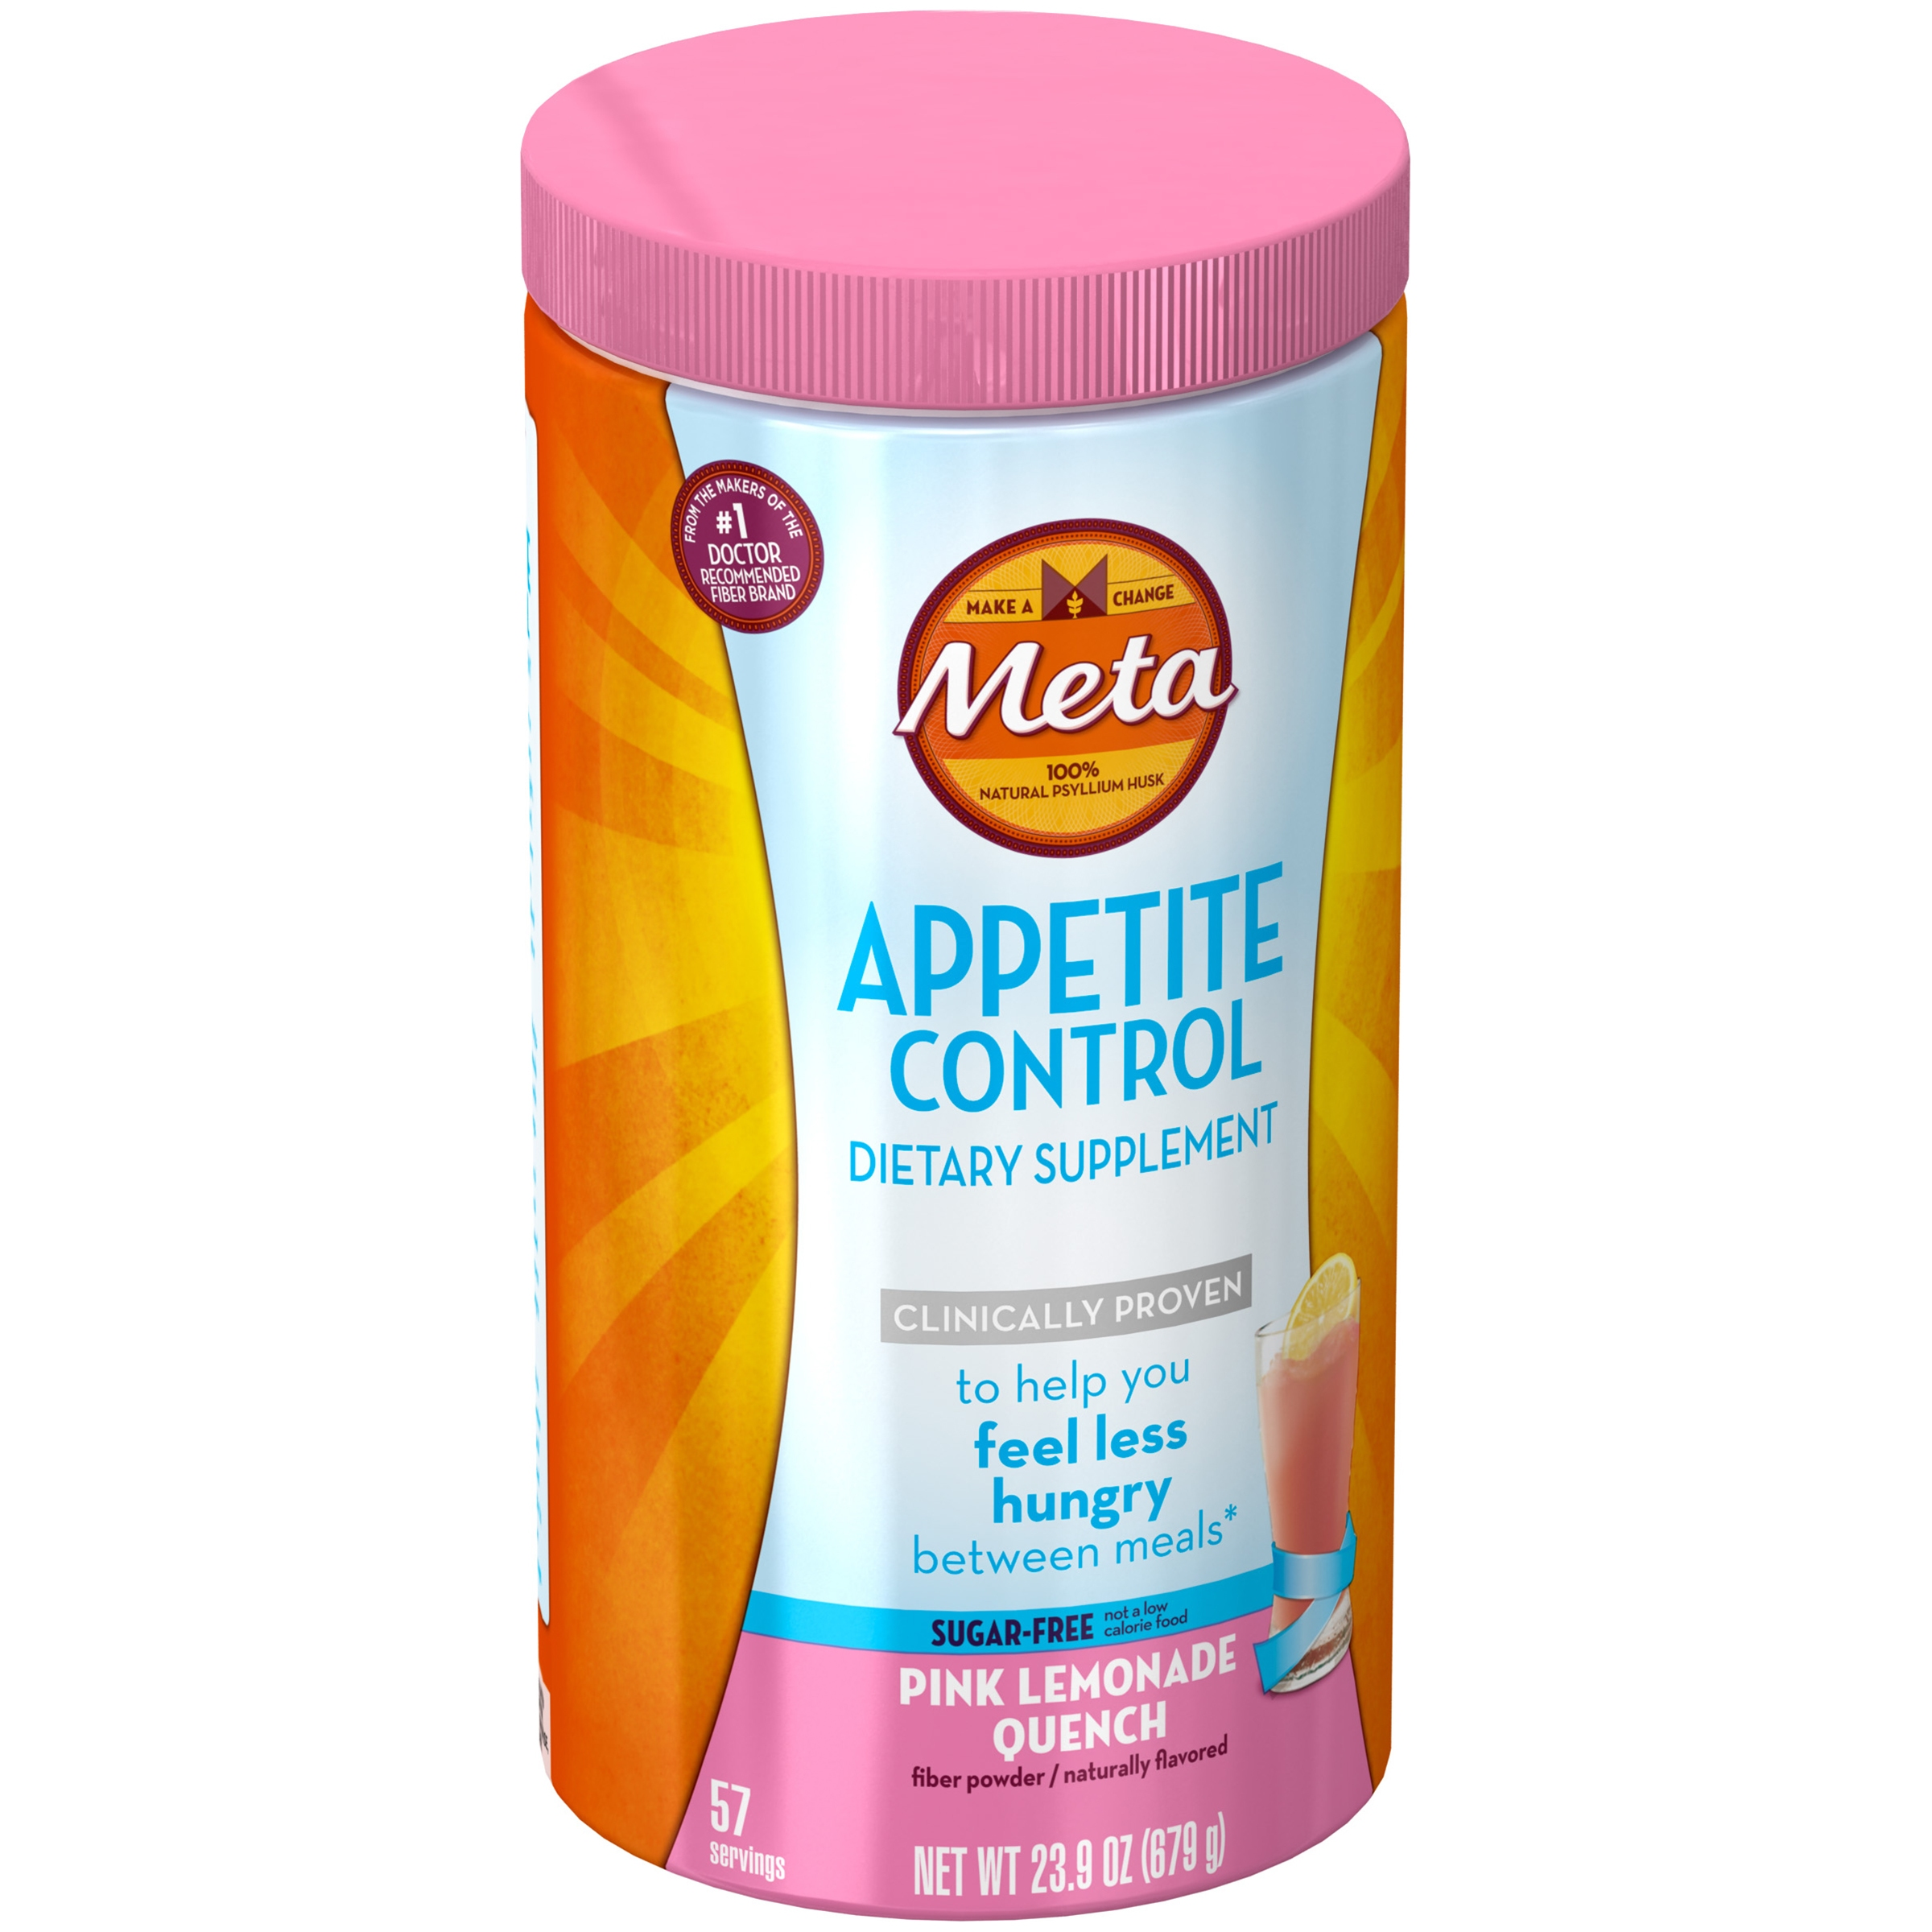 Meta Appetite Control Dietary Supplement, Sugar-Free Pink Lemonade Quench, 57 servings